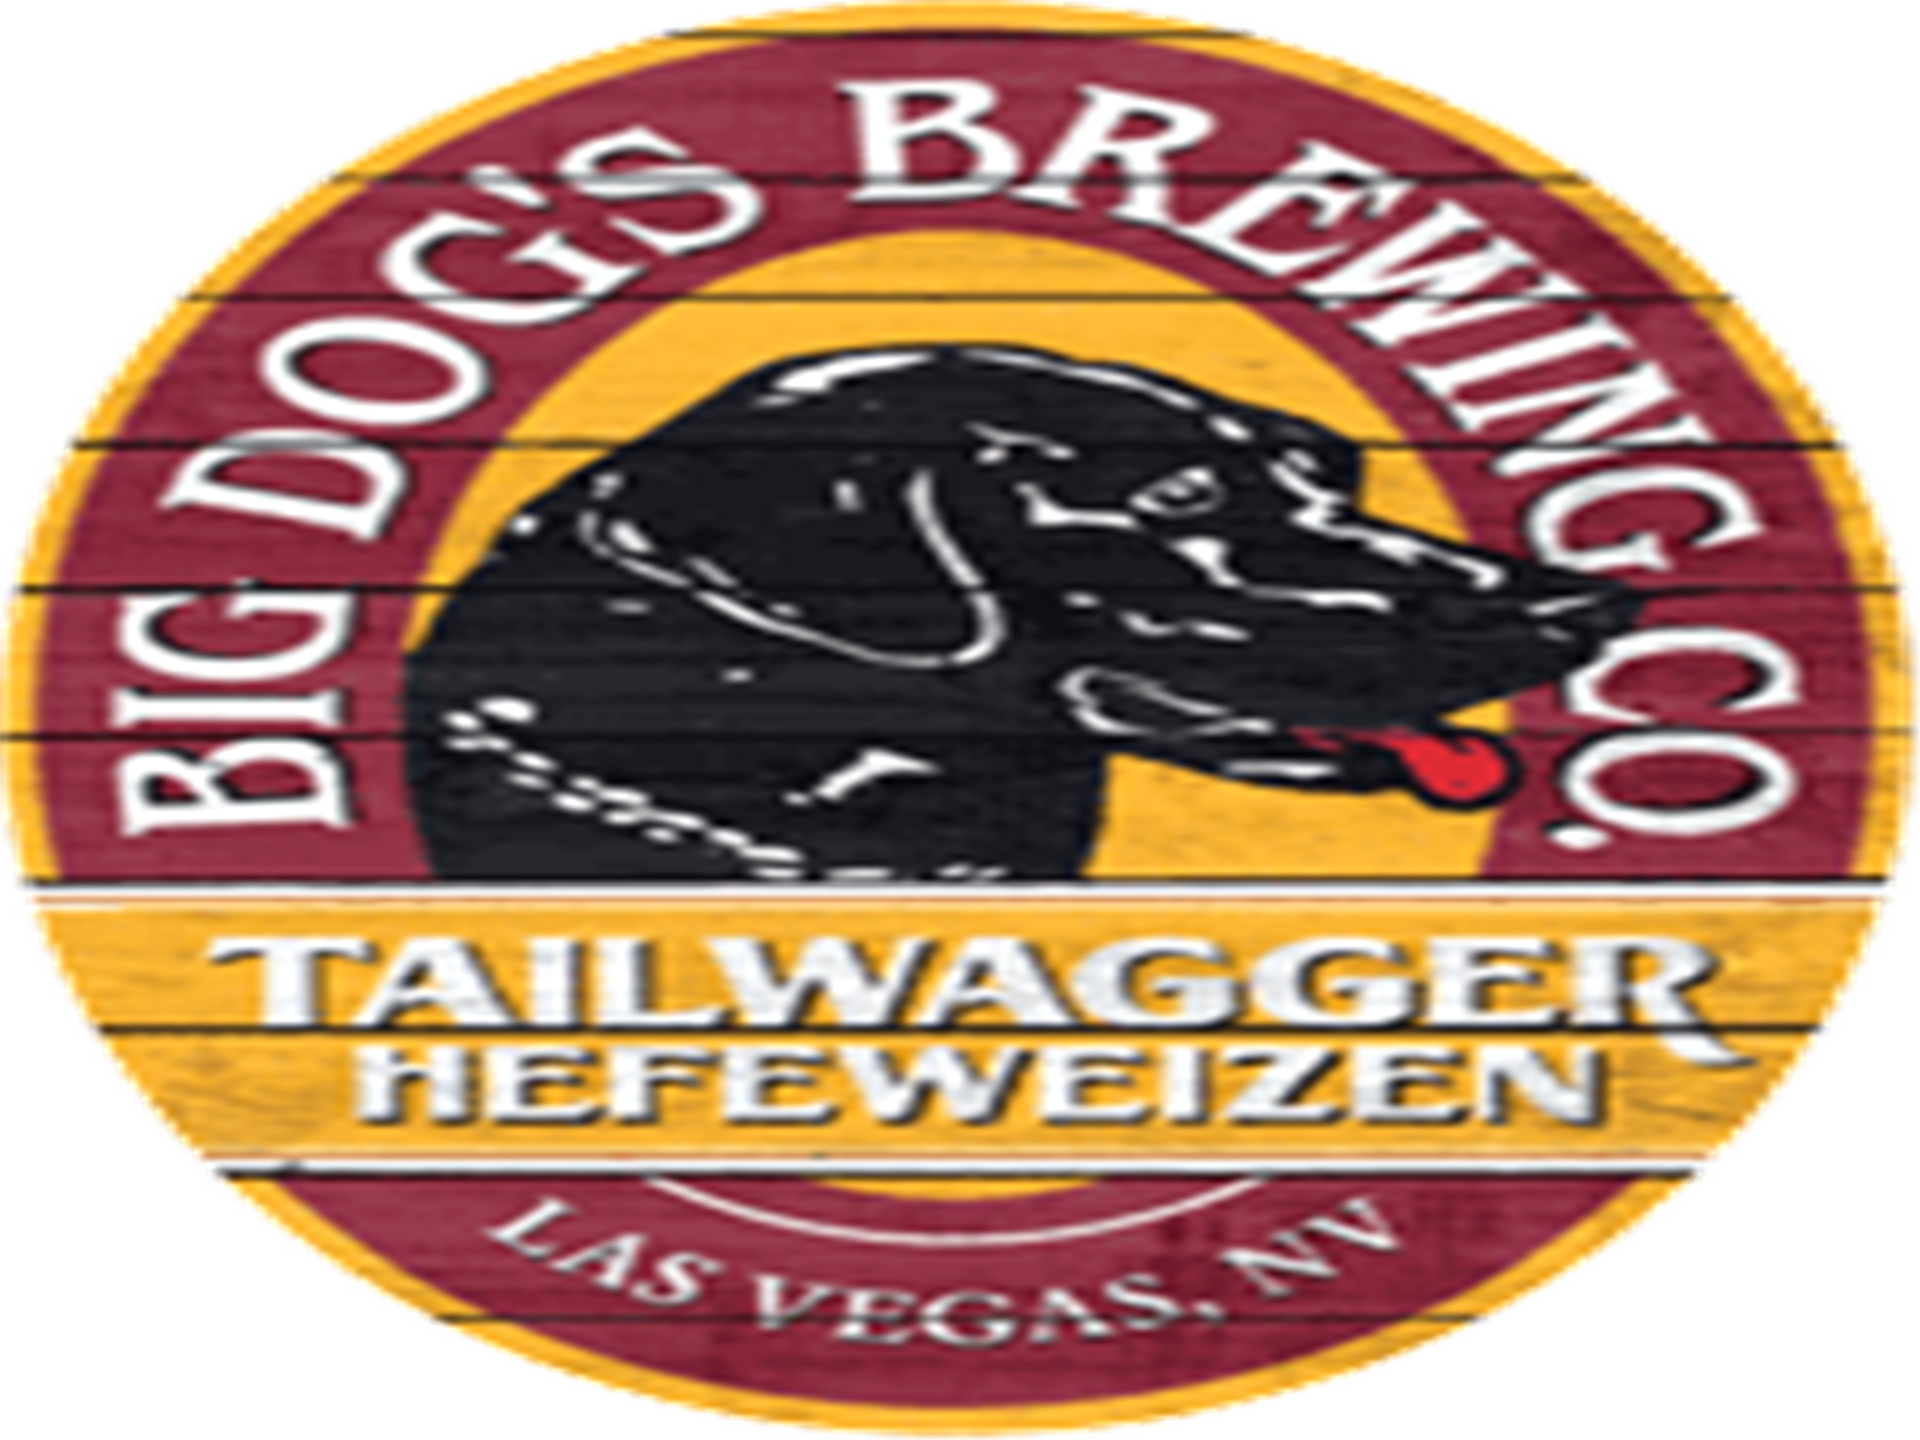 Big Dog's Brewing Company. Tailwagger Hefeweizen. Las Vegas, NV